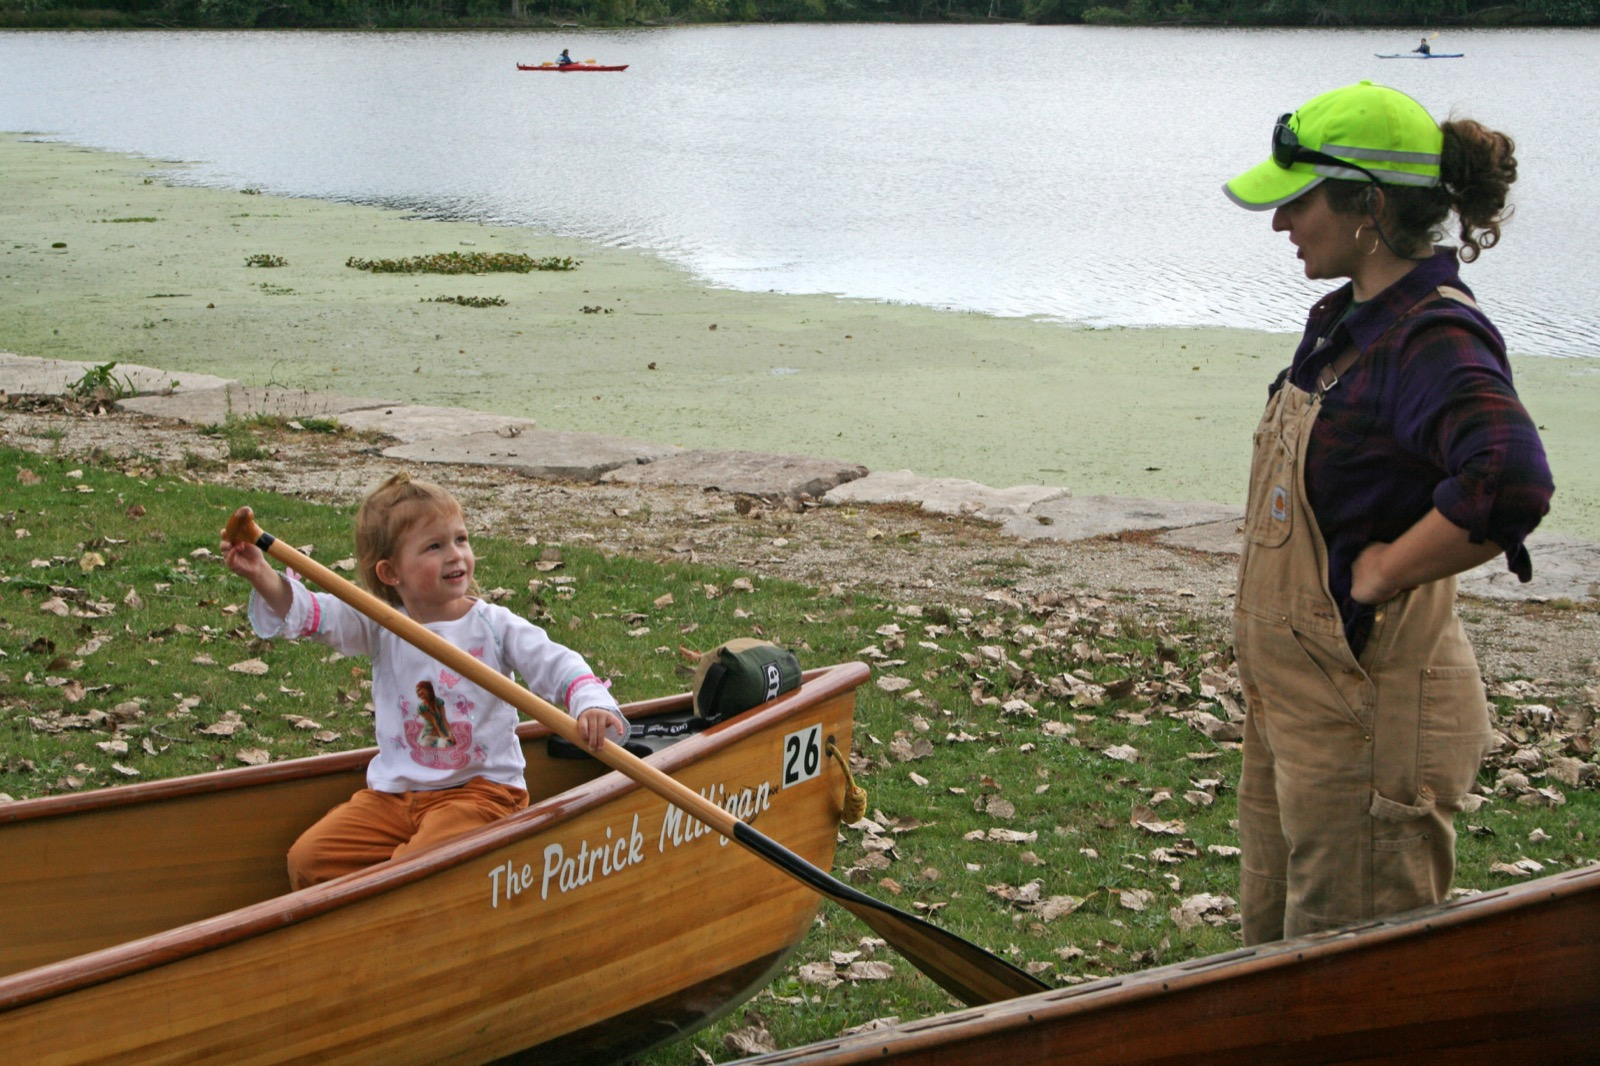 a young girl sits in a canoe on land with large paddle smiling at WI staff member